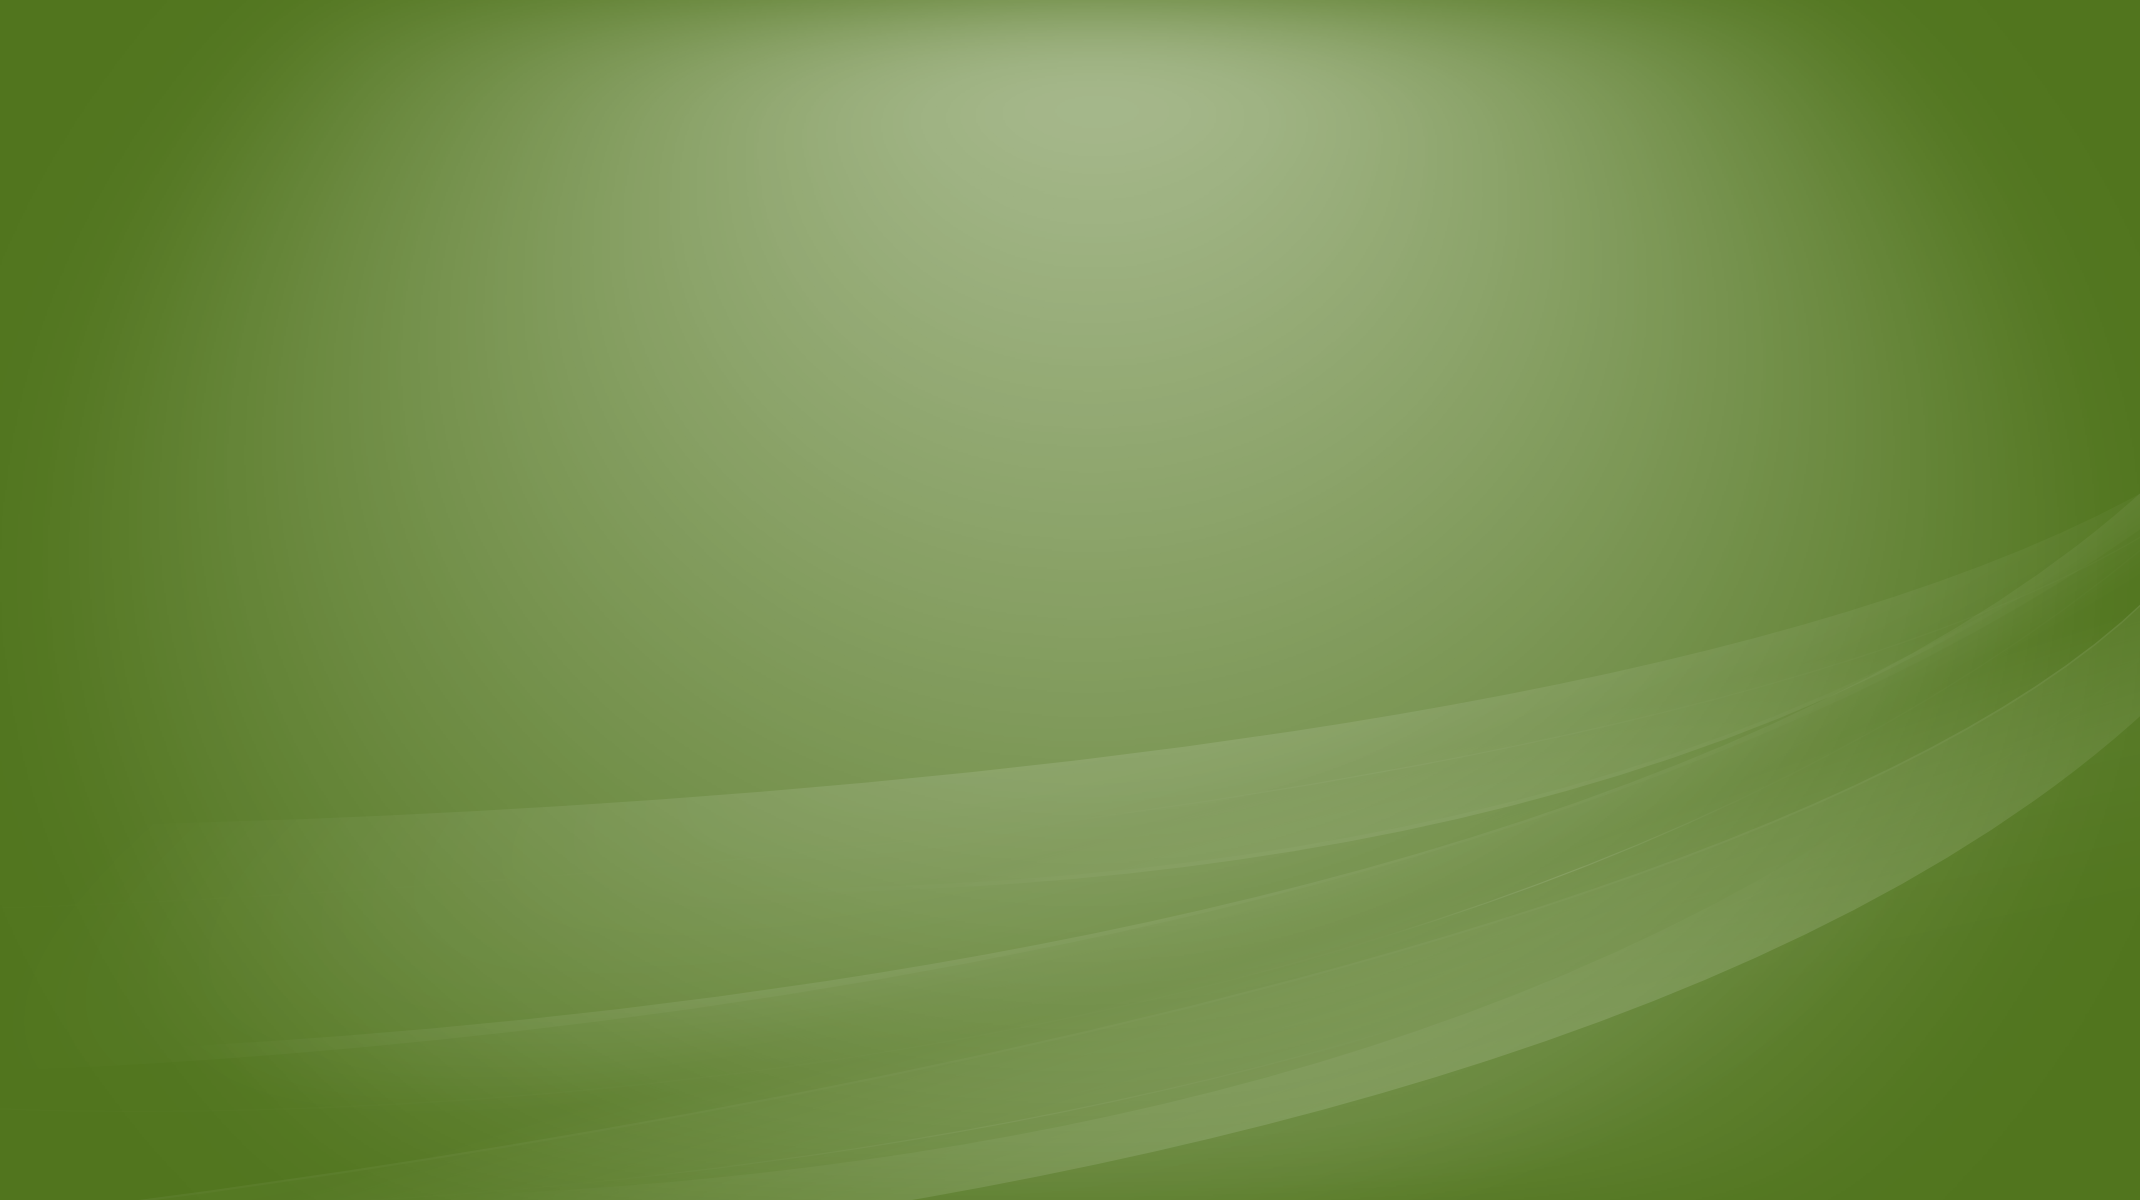 linux mint wallpapers 2140x1200 hd wallpapers